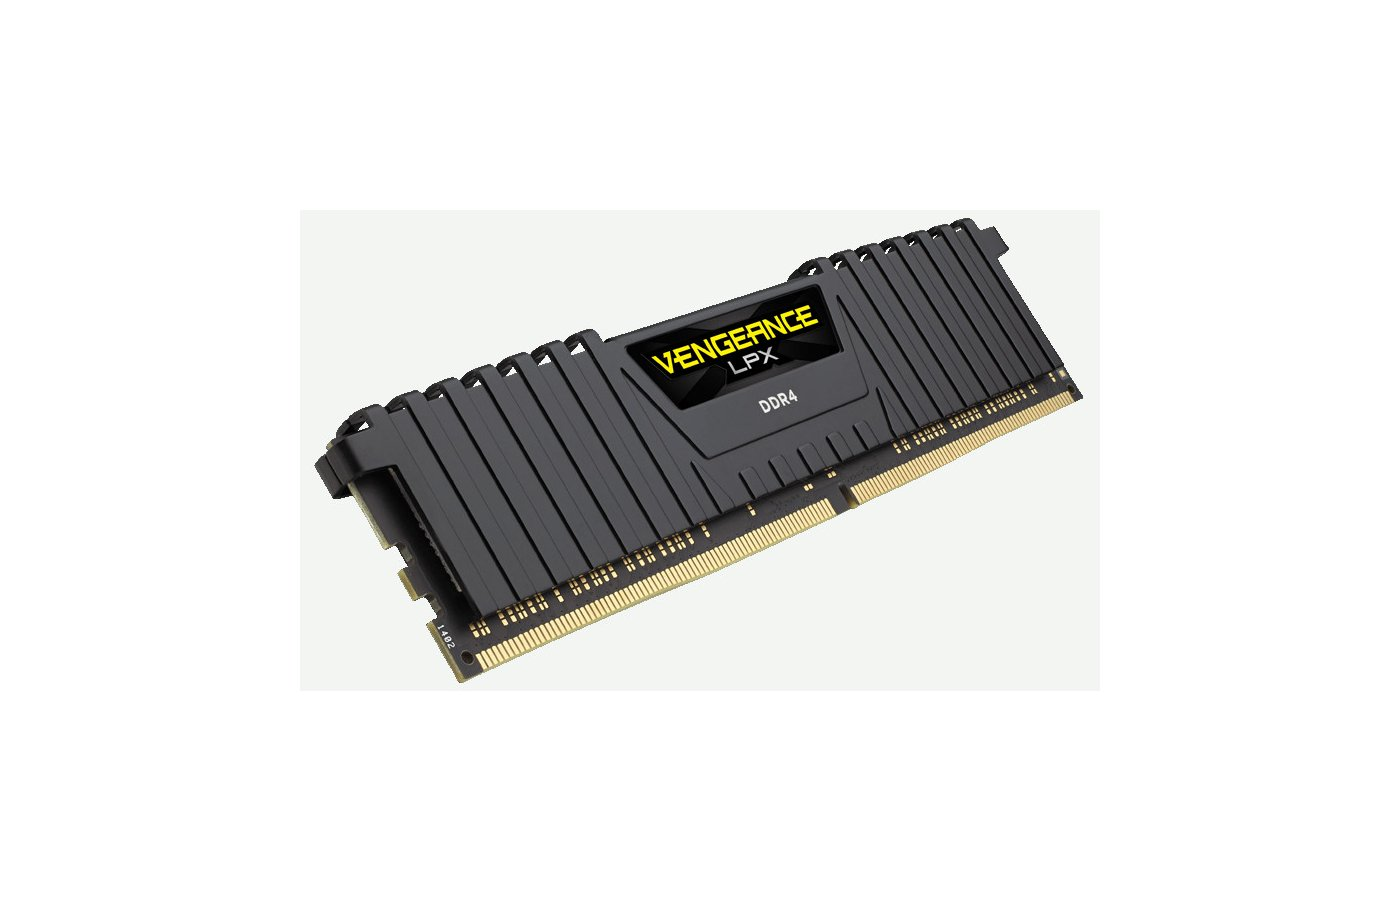 Оперативная память Corsair CMK8GX4M2A2400C14 RTL PC4-19200 DDR4 2x4Gb 2400MHz CL14 DIMM